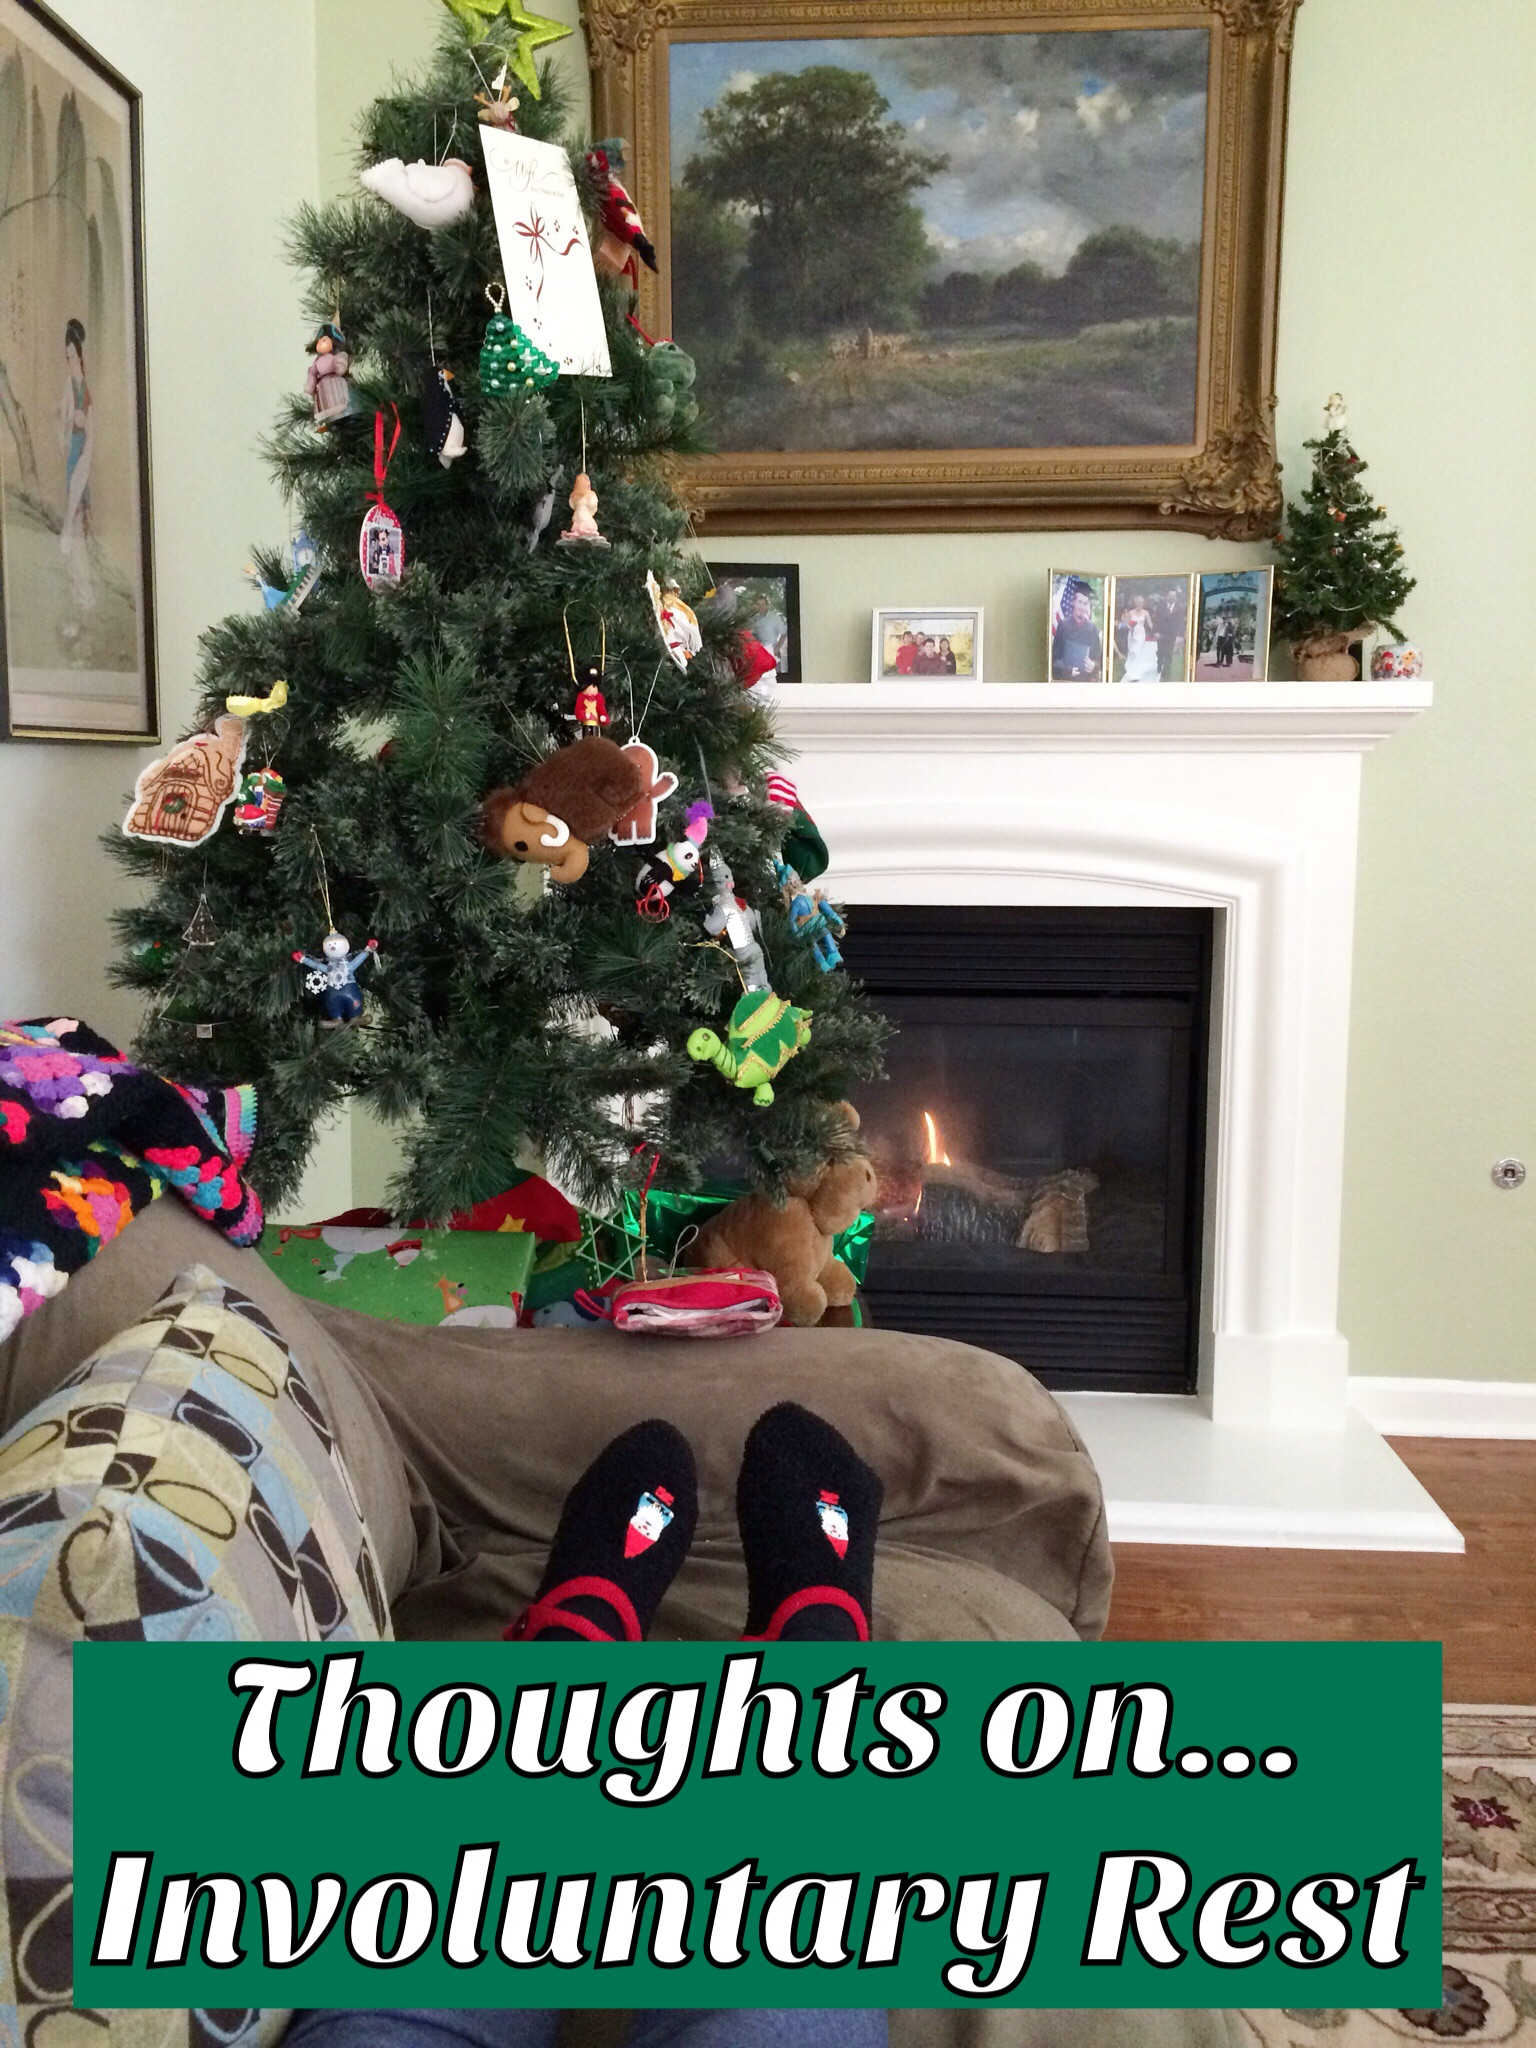 Thoughts on… Involuntary Rest